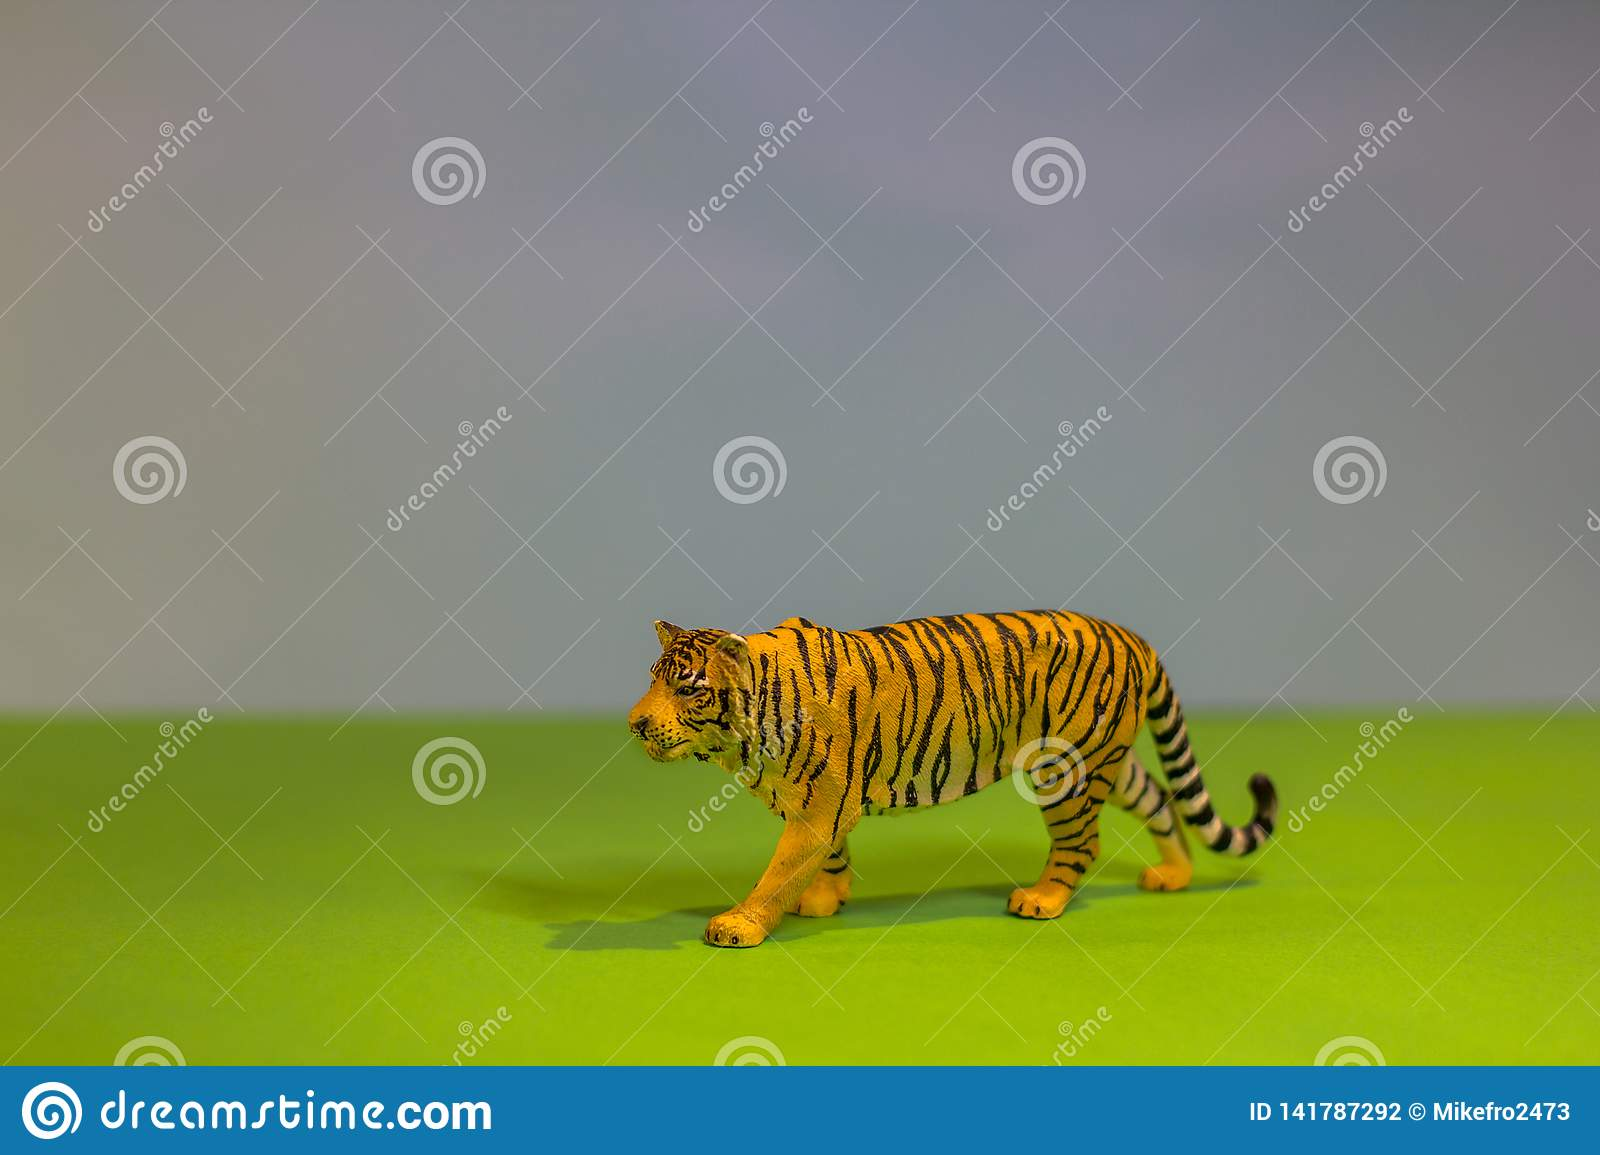 Like a real tiger. Toy tiger on a bright studio background. Eco toys.